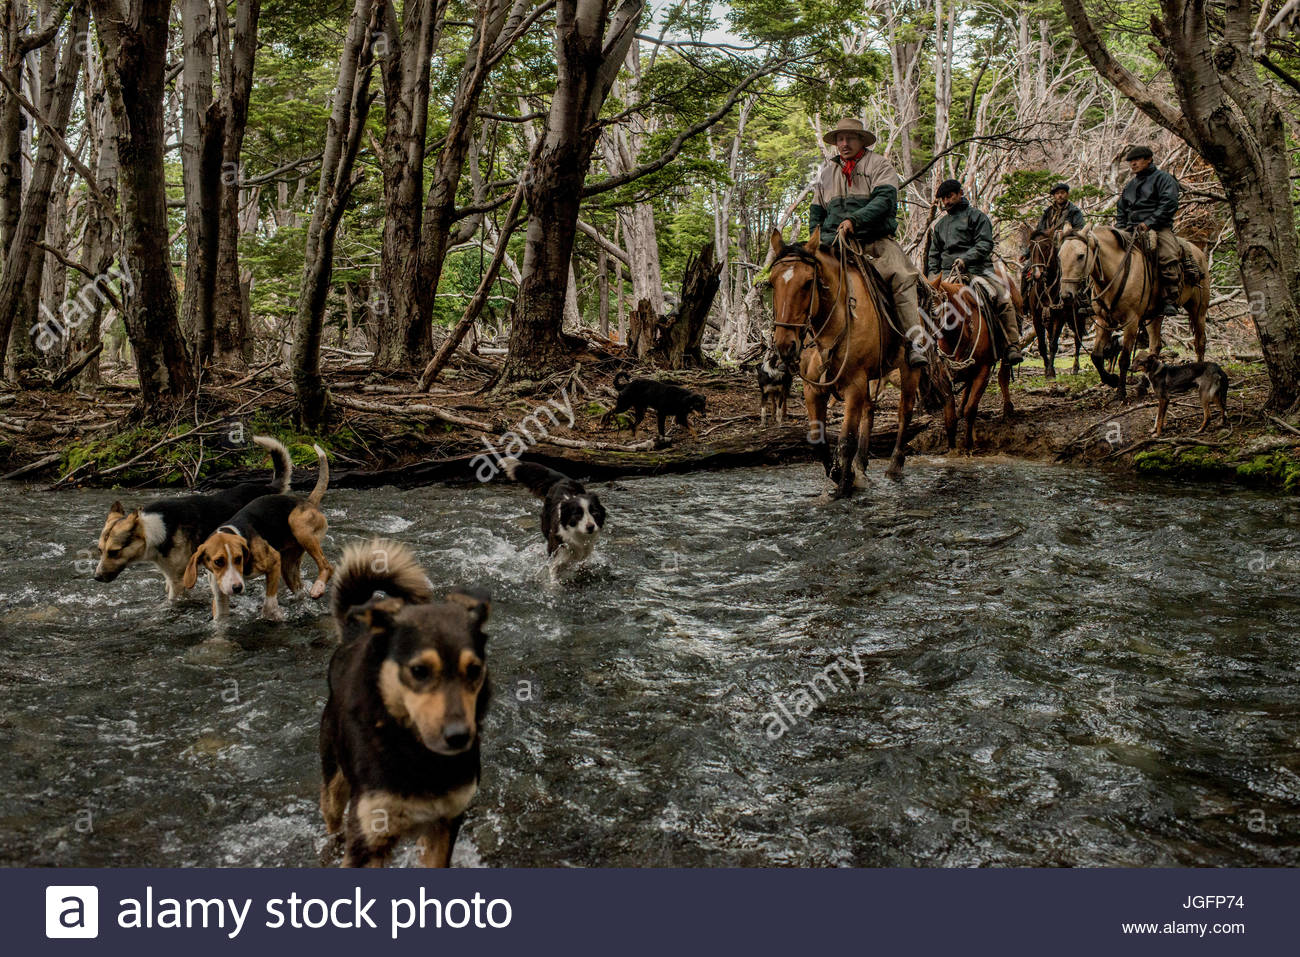 Bagualeros, cowboys who capture feral livestock, cross a river in Sutherland while looking for animals. - Stock Image